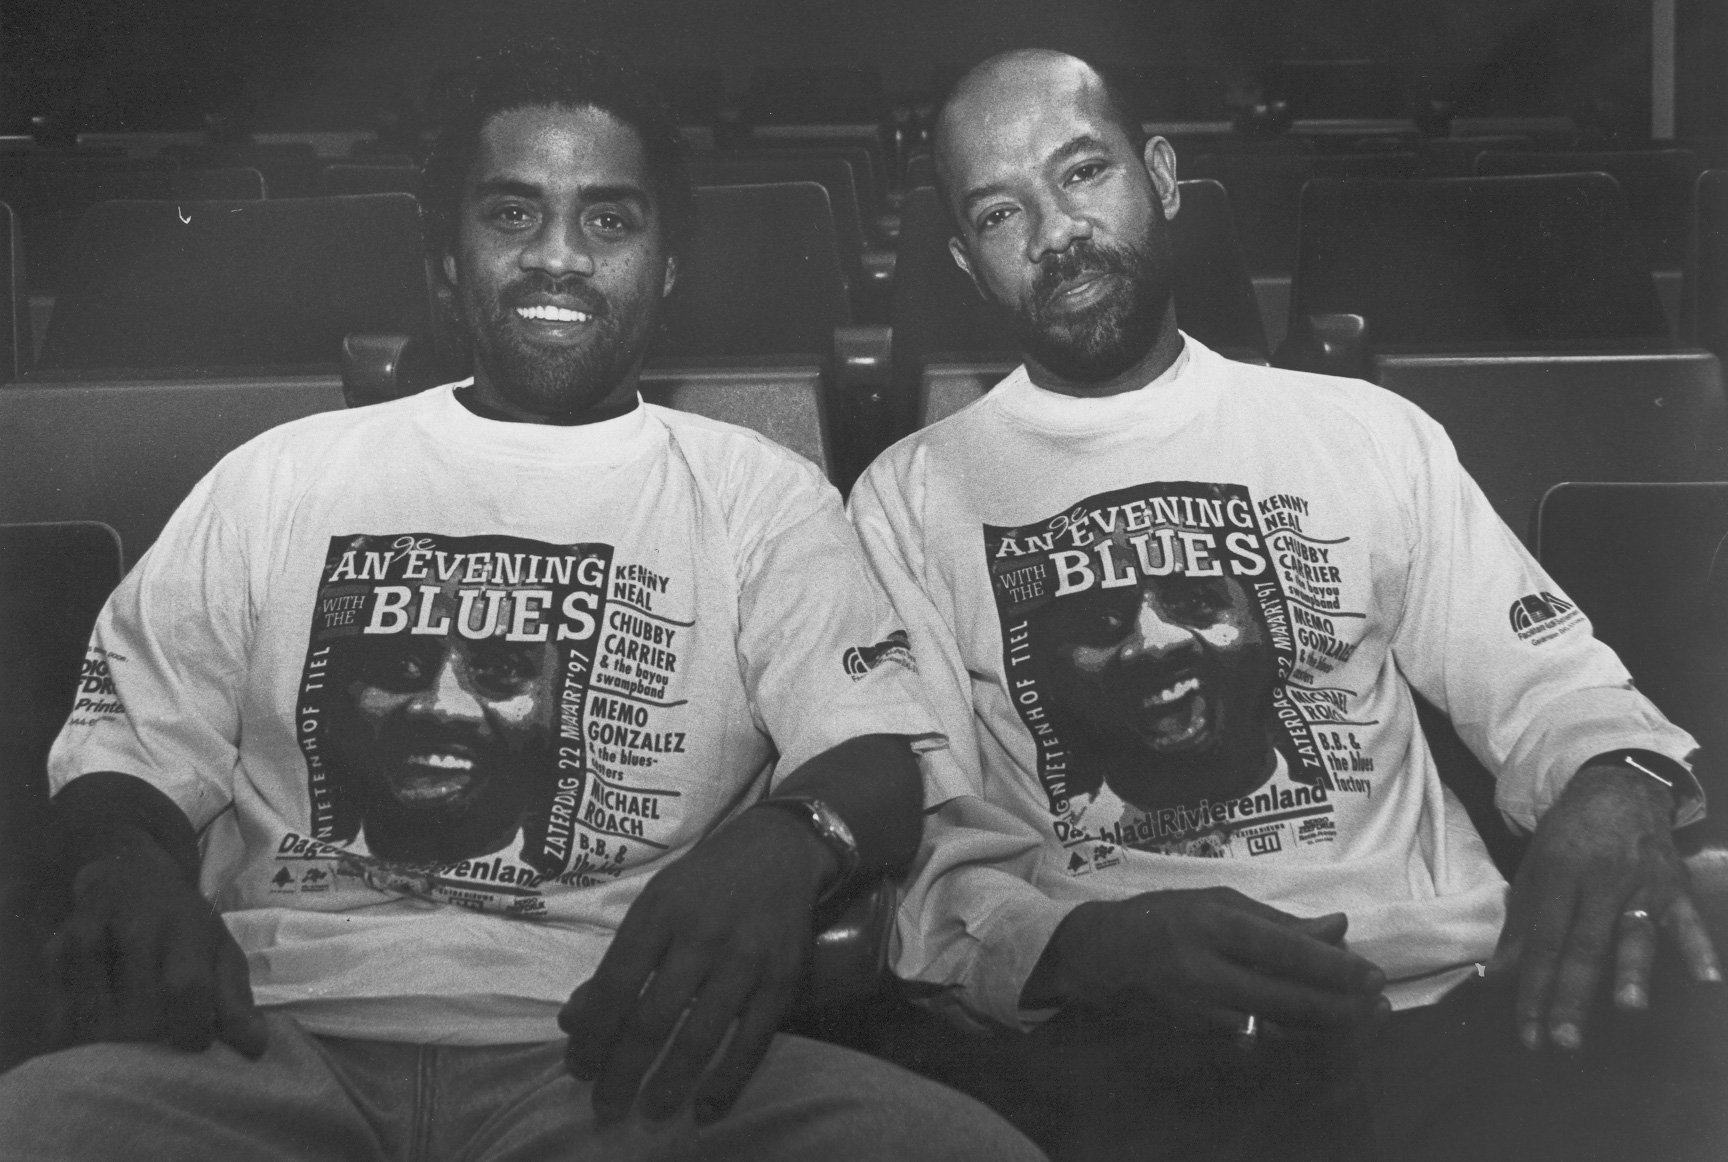 Kenny Neal and Michael at the Tiel Blues Festival, Netherlands (1997)